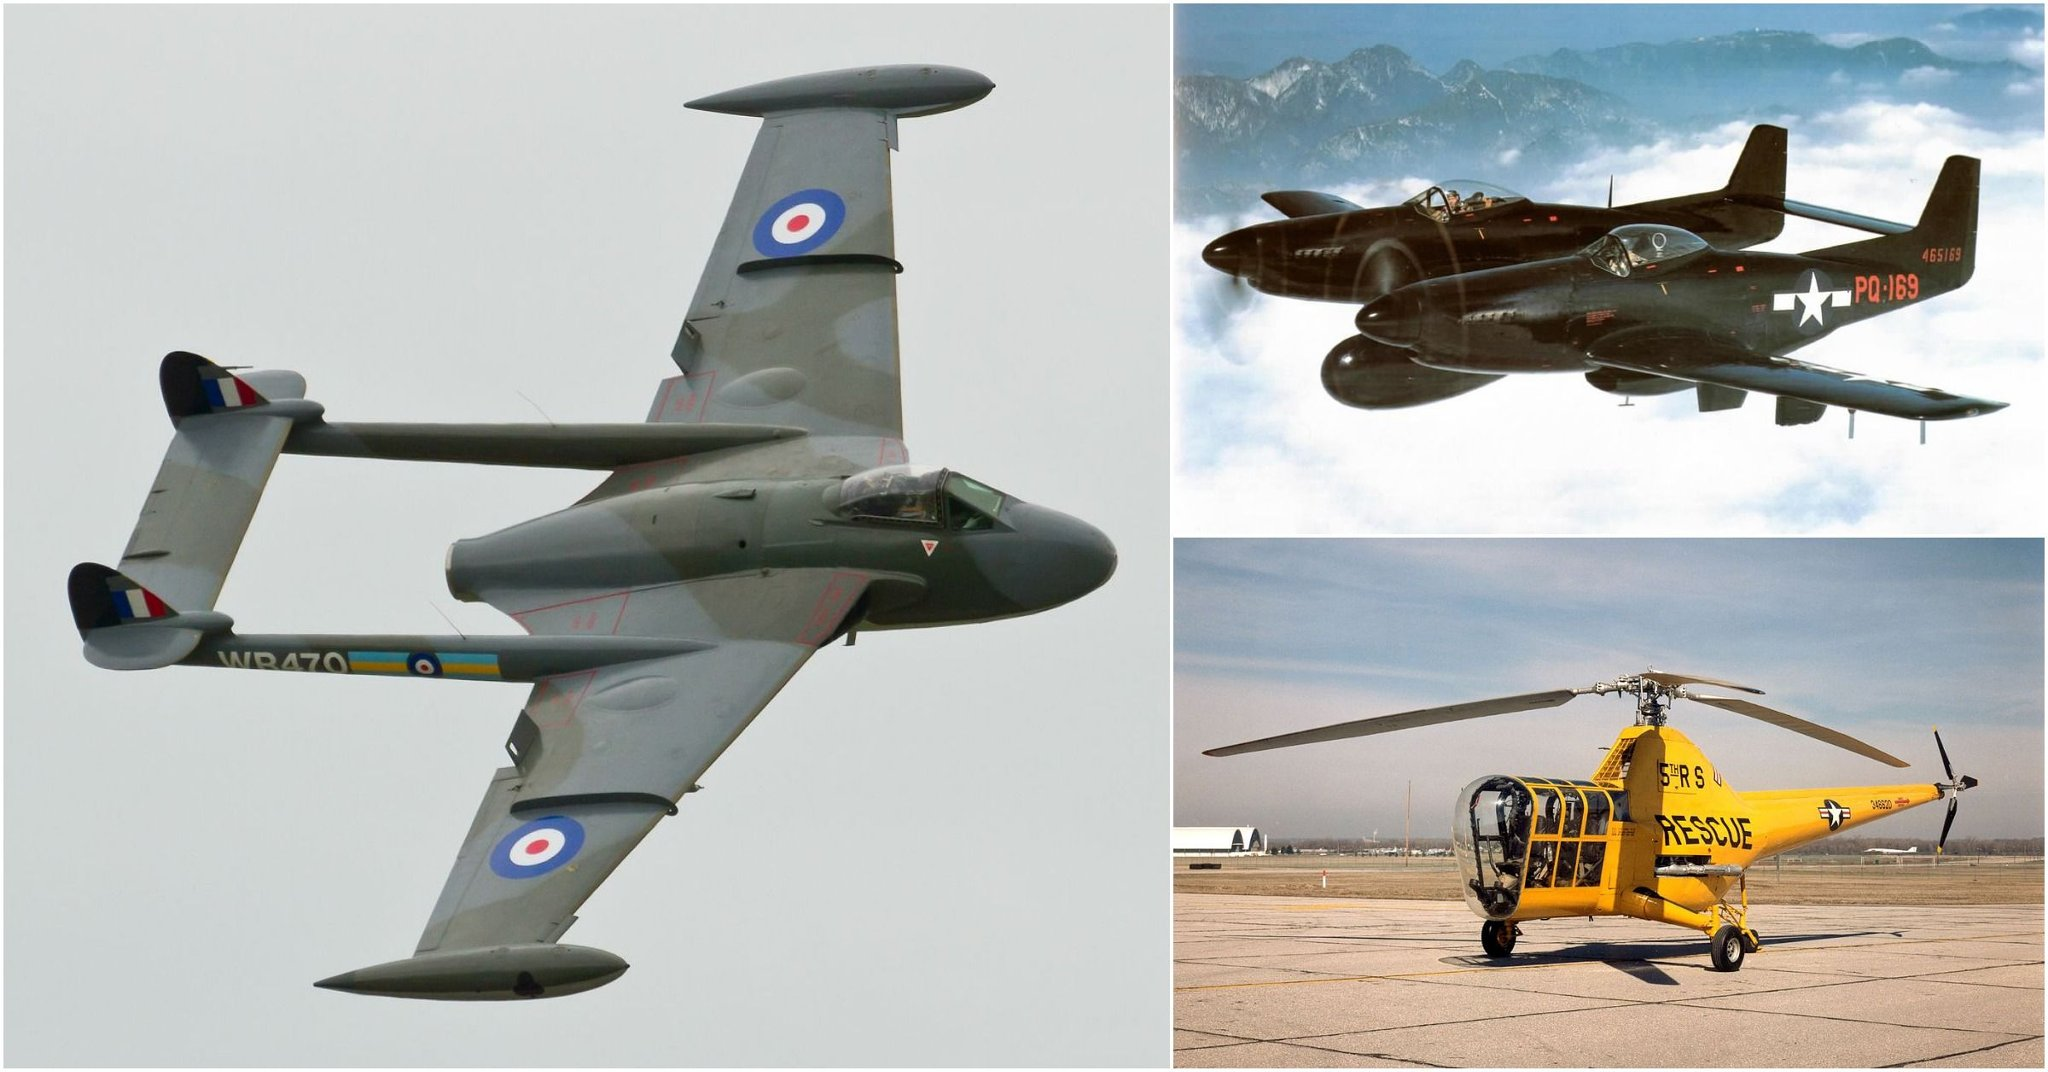 15 Of The Weirdest Military Aircraft That Were Actually Useful